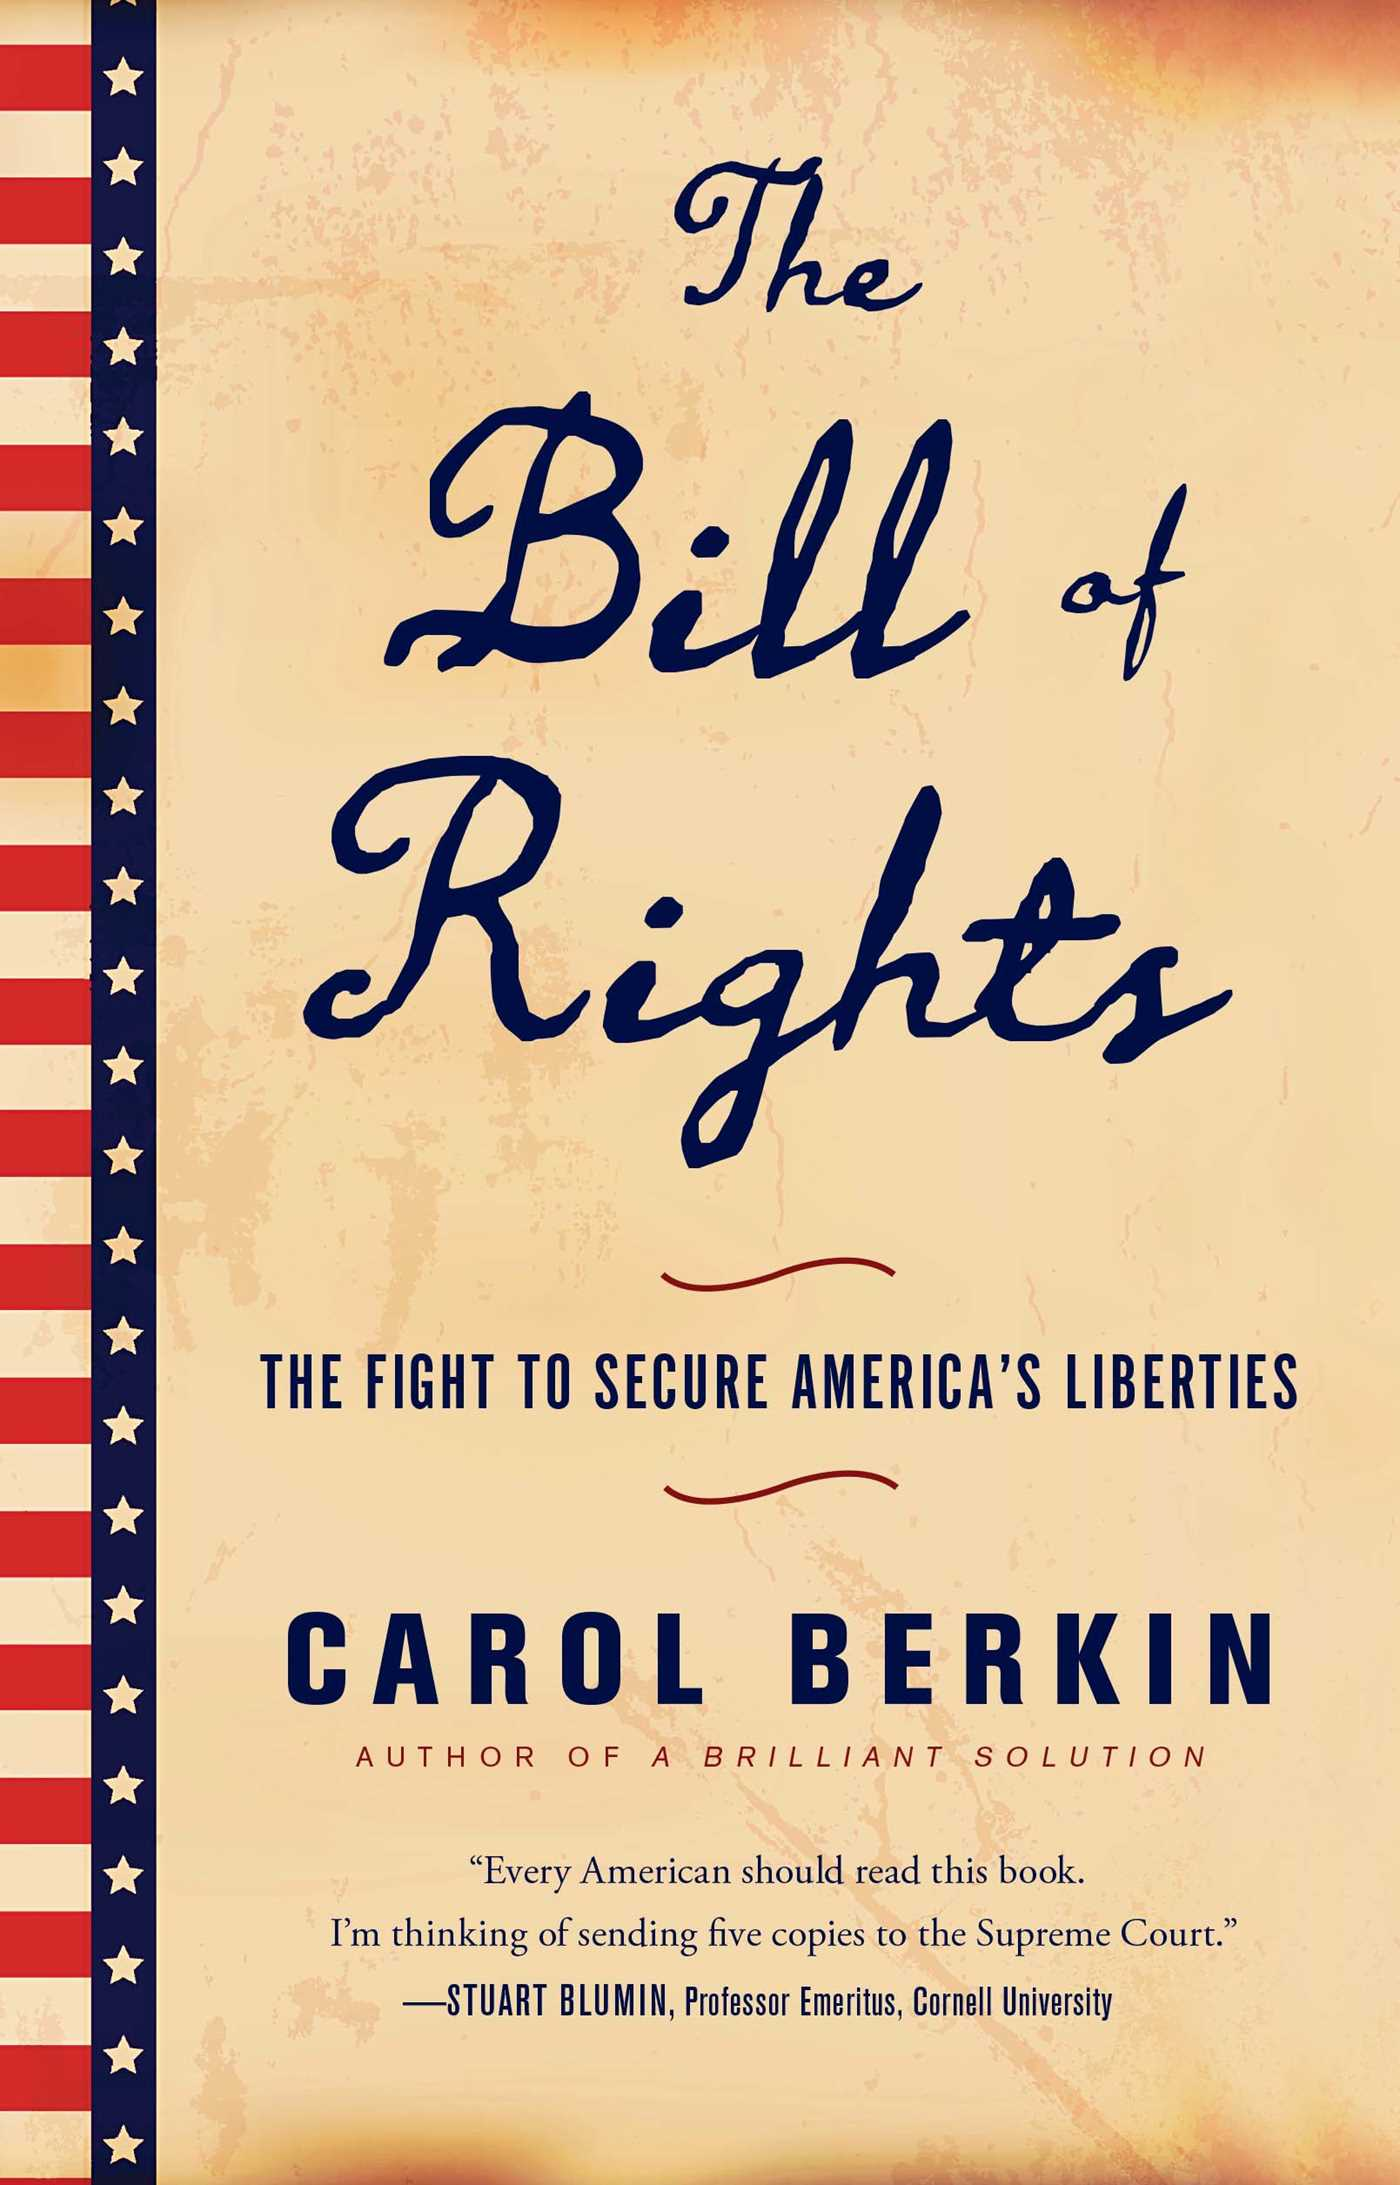 The Bill of Rights   Book by Carol Berkin   Official Publisher ...